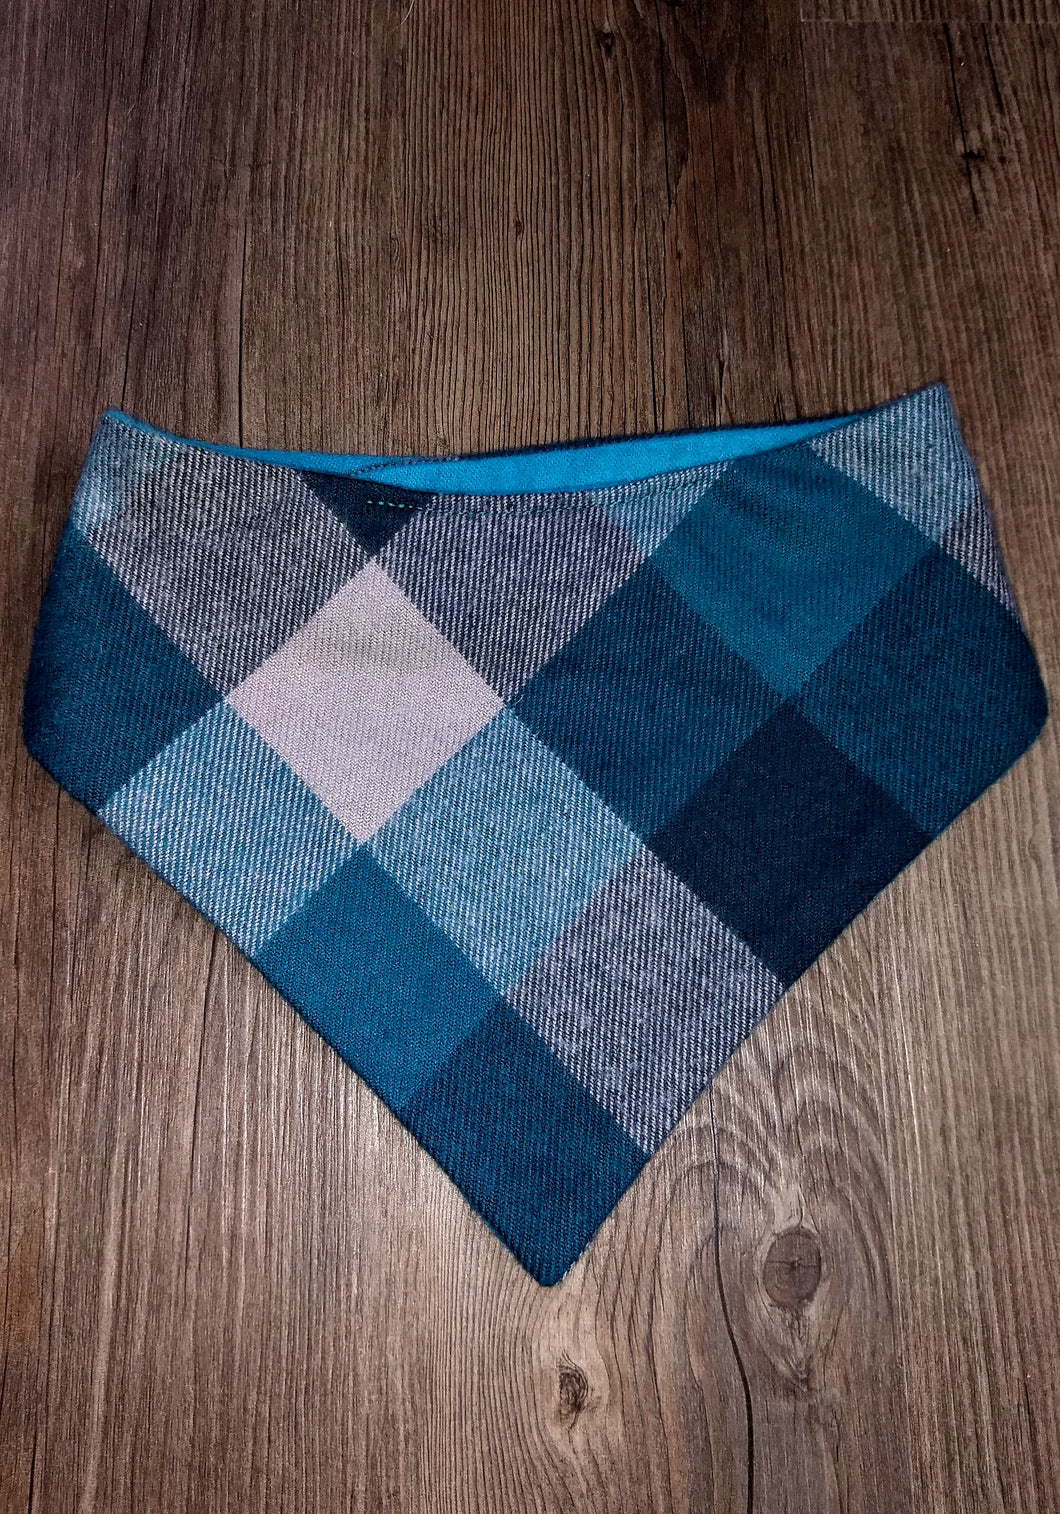 Teal Flannel Snap-on Pet Bandana